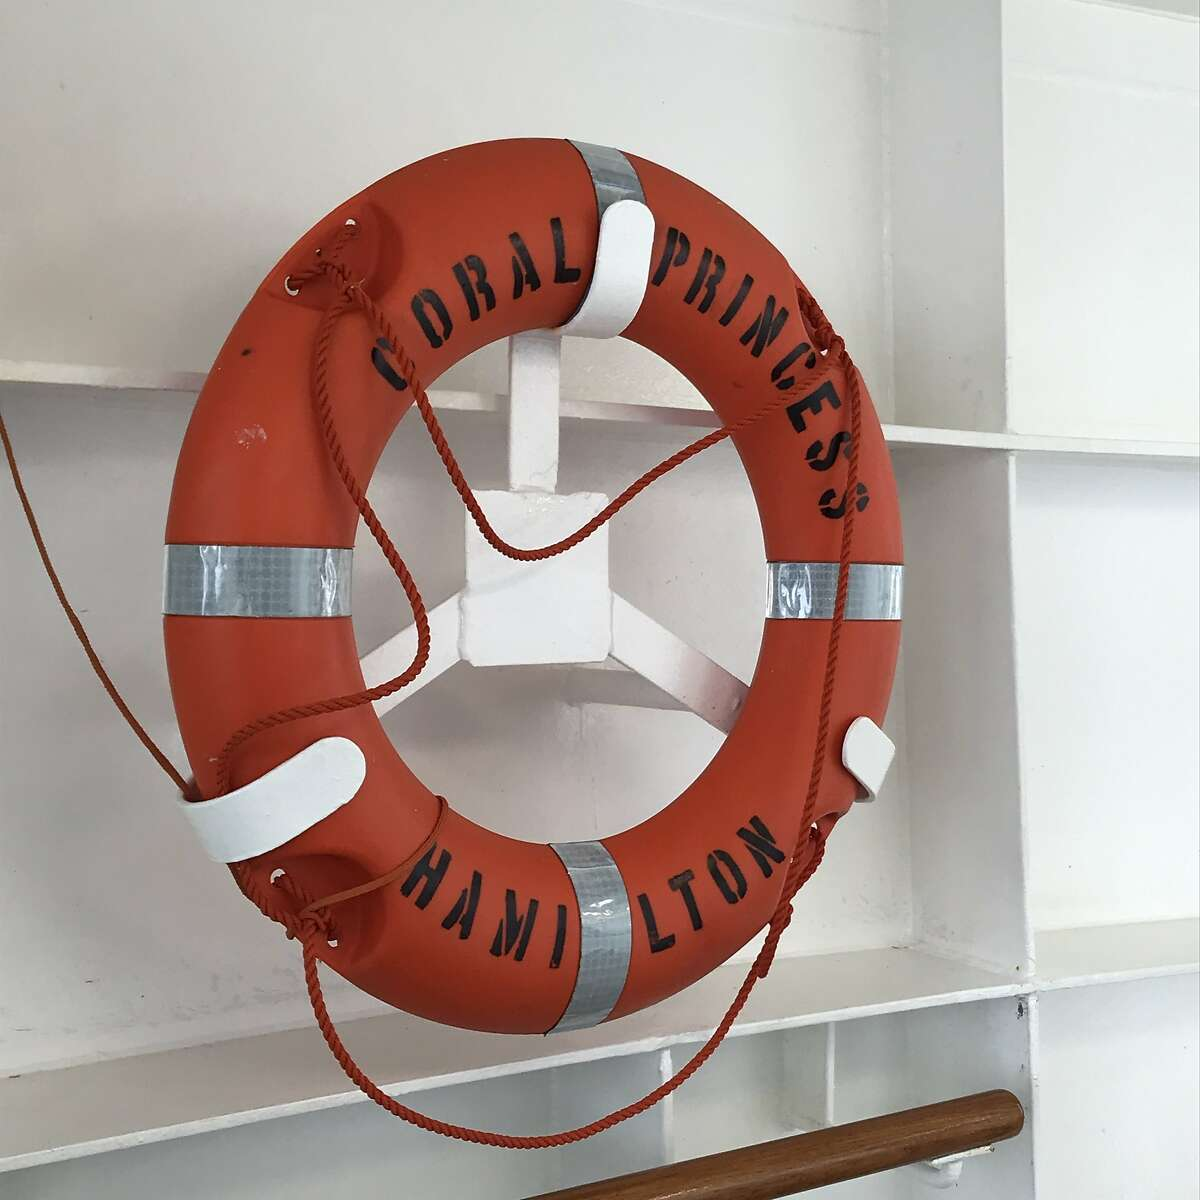 A life preserver aboard the Coral Princess